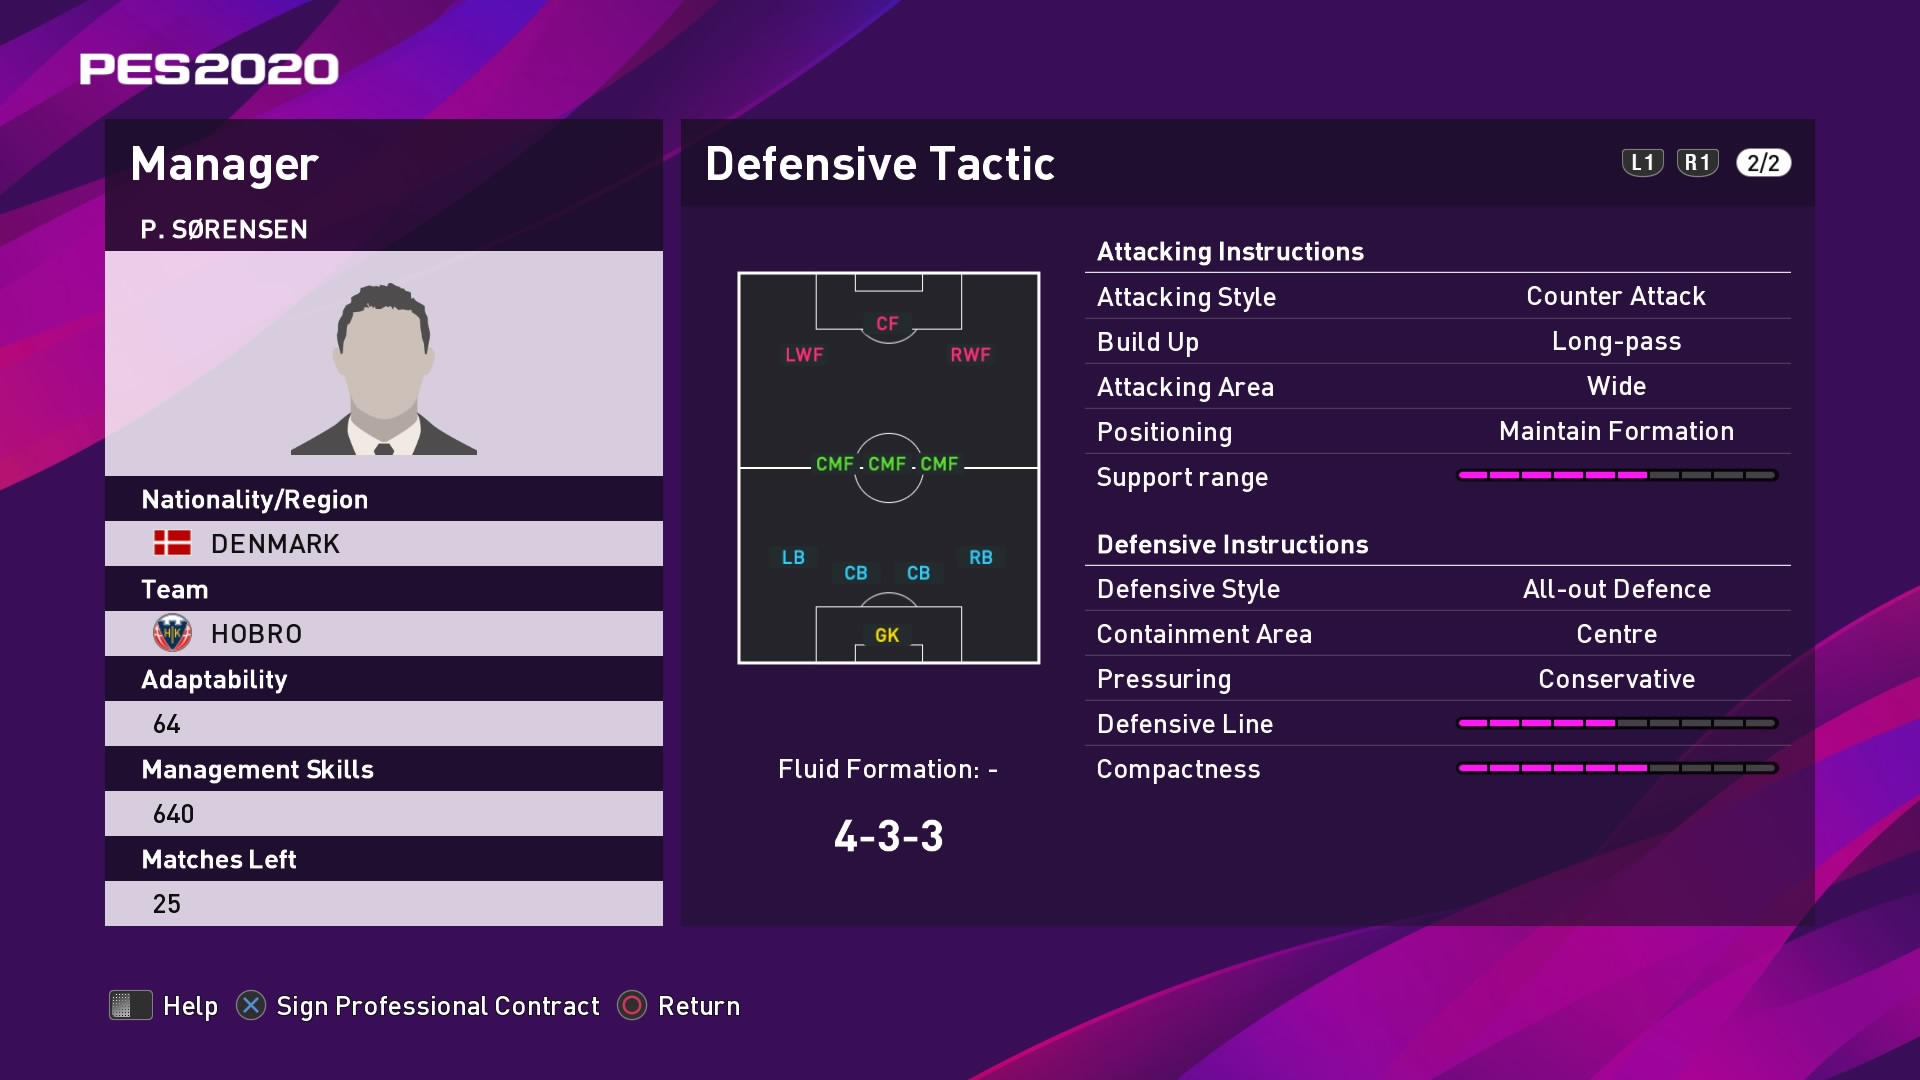 P. Sørensen (Peter Sørensen) Defensive Tactic in PES 2020 myClub